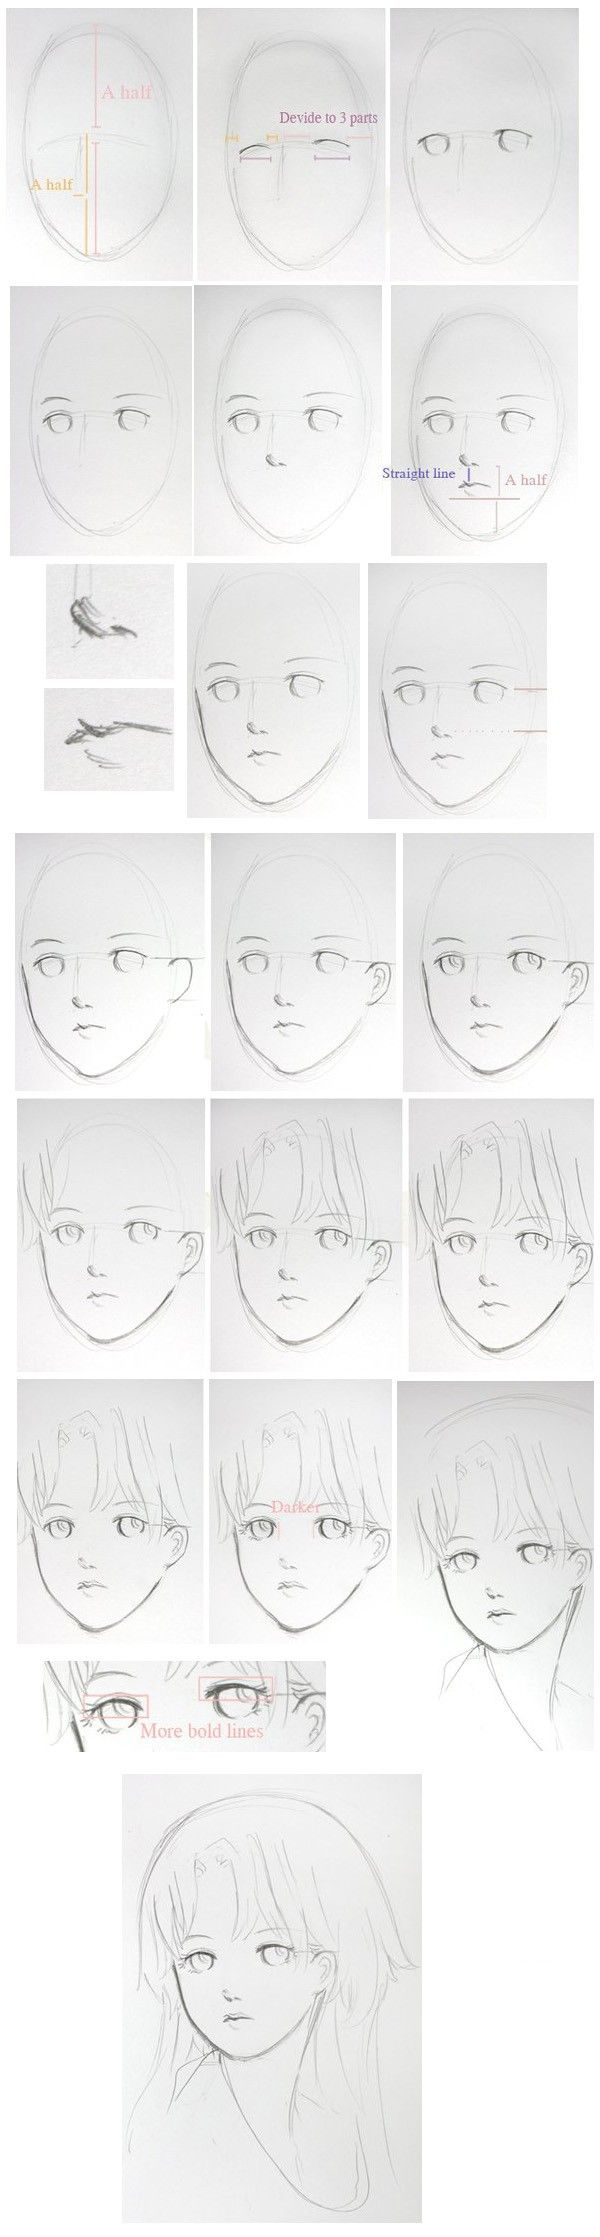 教你画个美人头, How to Draw Manga People,Resources for Art Students / Art School Portfolio @ CAPI ::: Create Art Portfolio Ideas at milliande.com , How to Draw Manga Figures, Whimsical Human Figure, Sketch, Draw, Manga, Anime